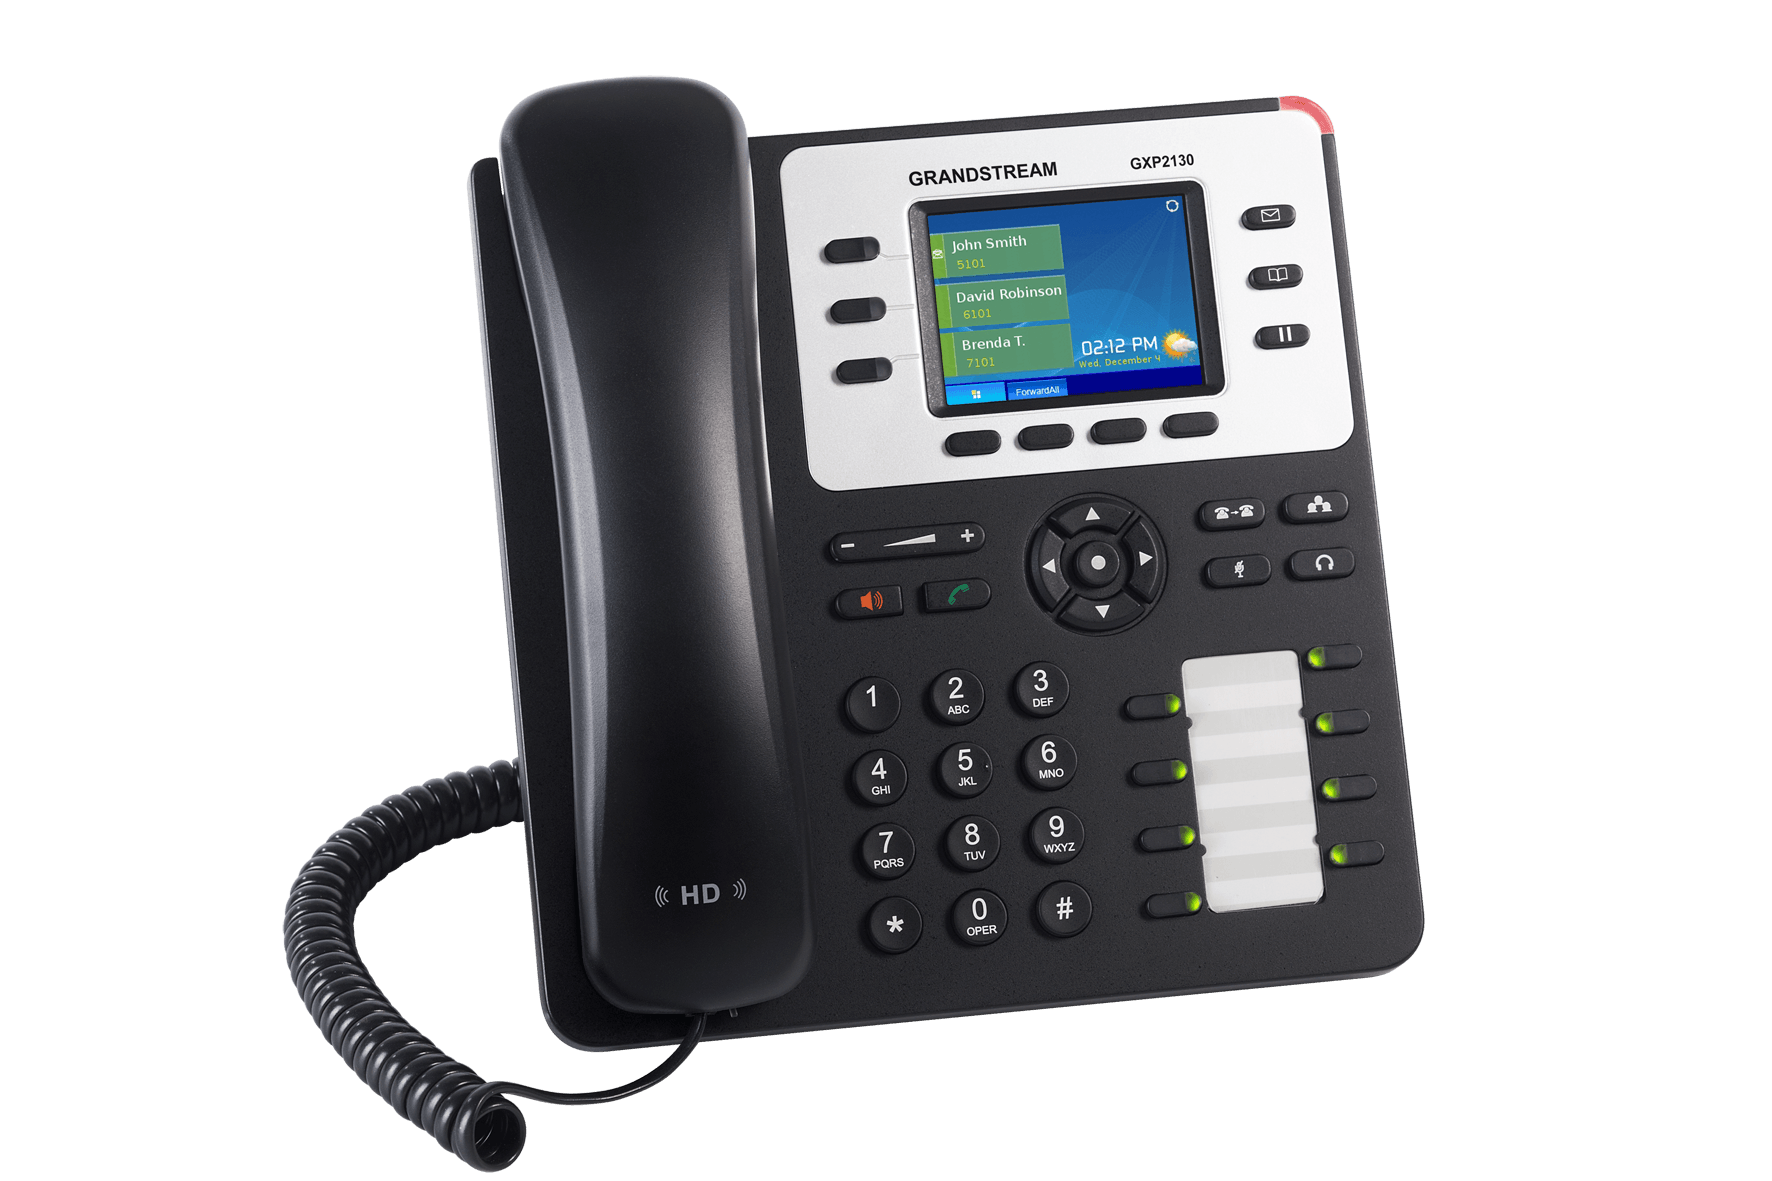 Cloud 9 Package includes a Grandstream GXP-2130 Phone